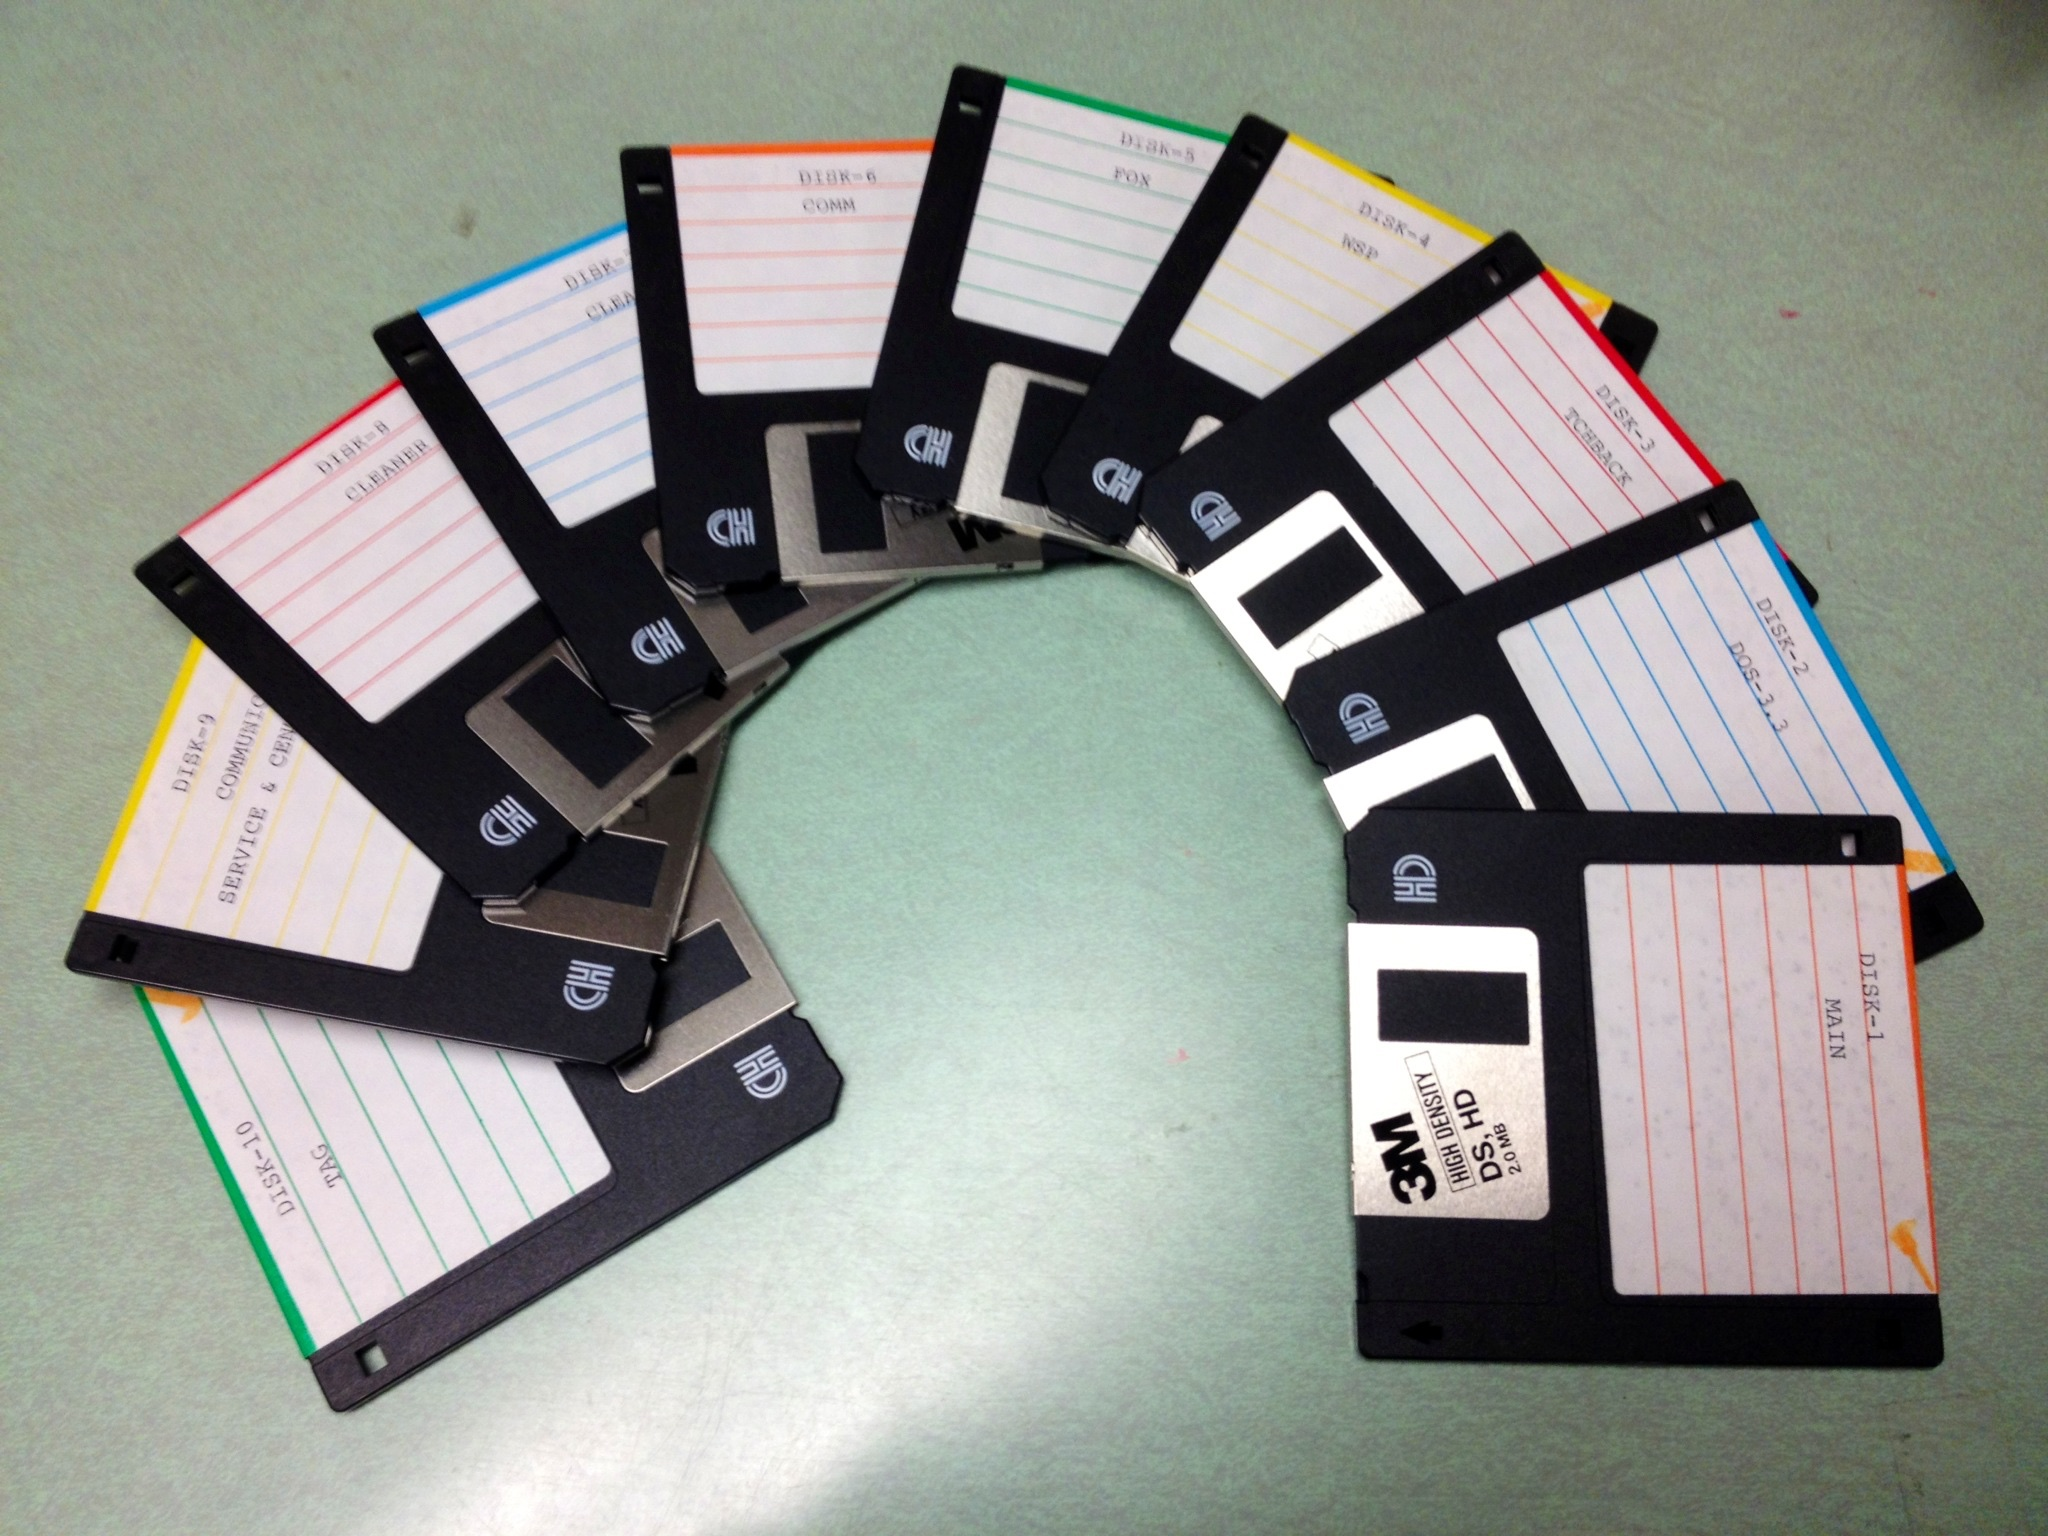 oldsoftwarefloppy